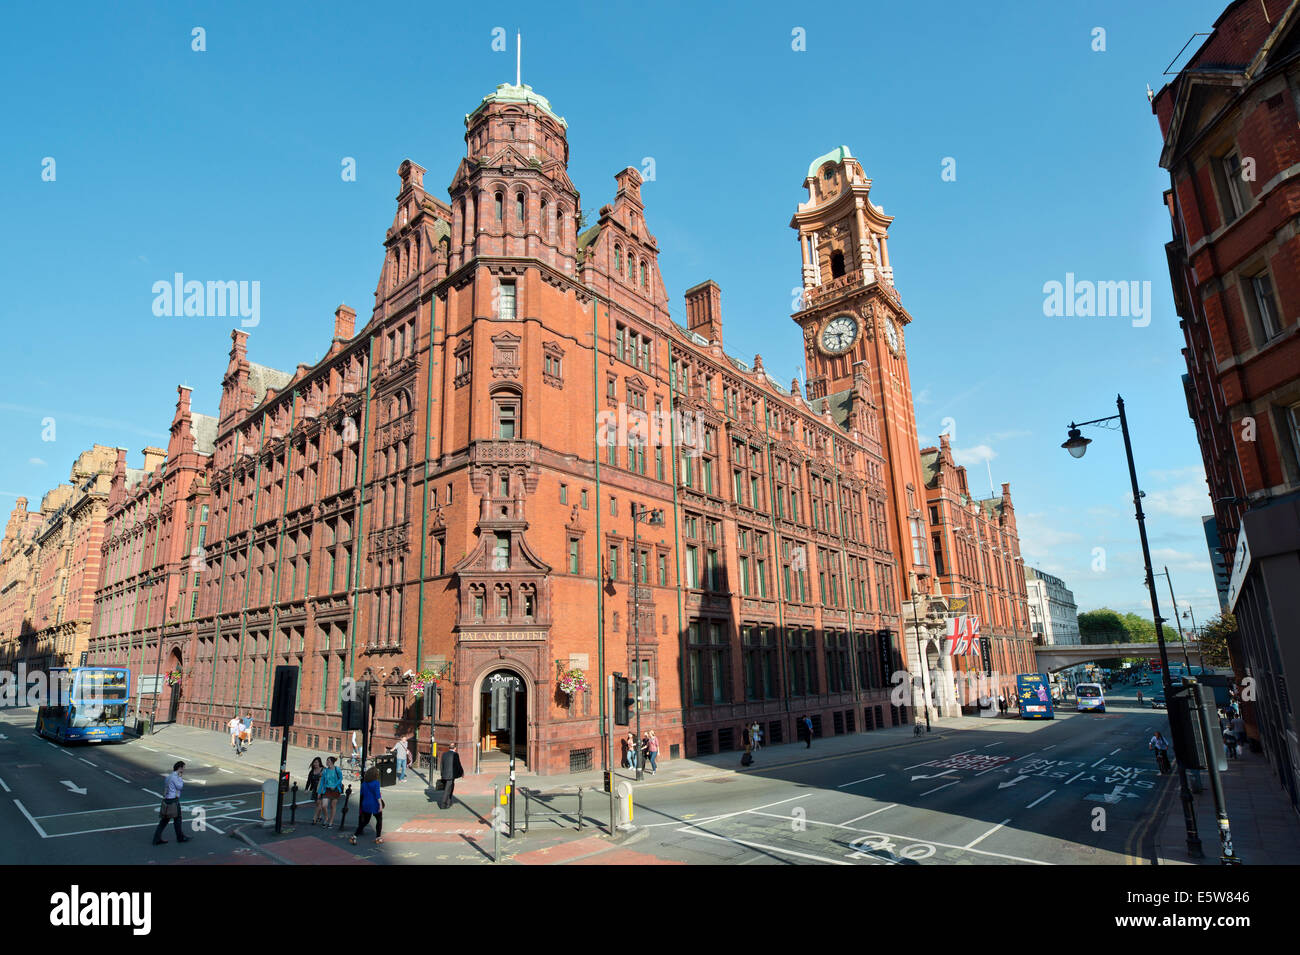 The Palace Hotel Located On Oxford Road Manchester UK Stock - Where is oxford located